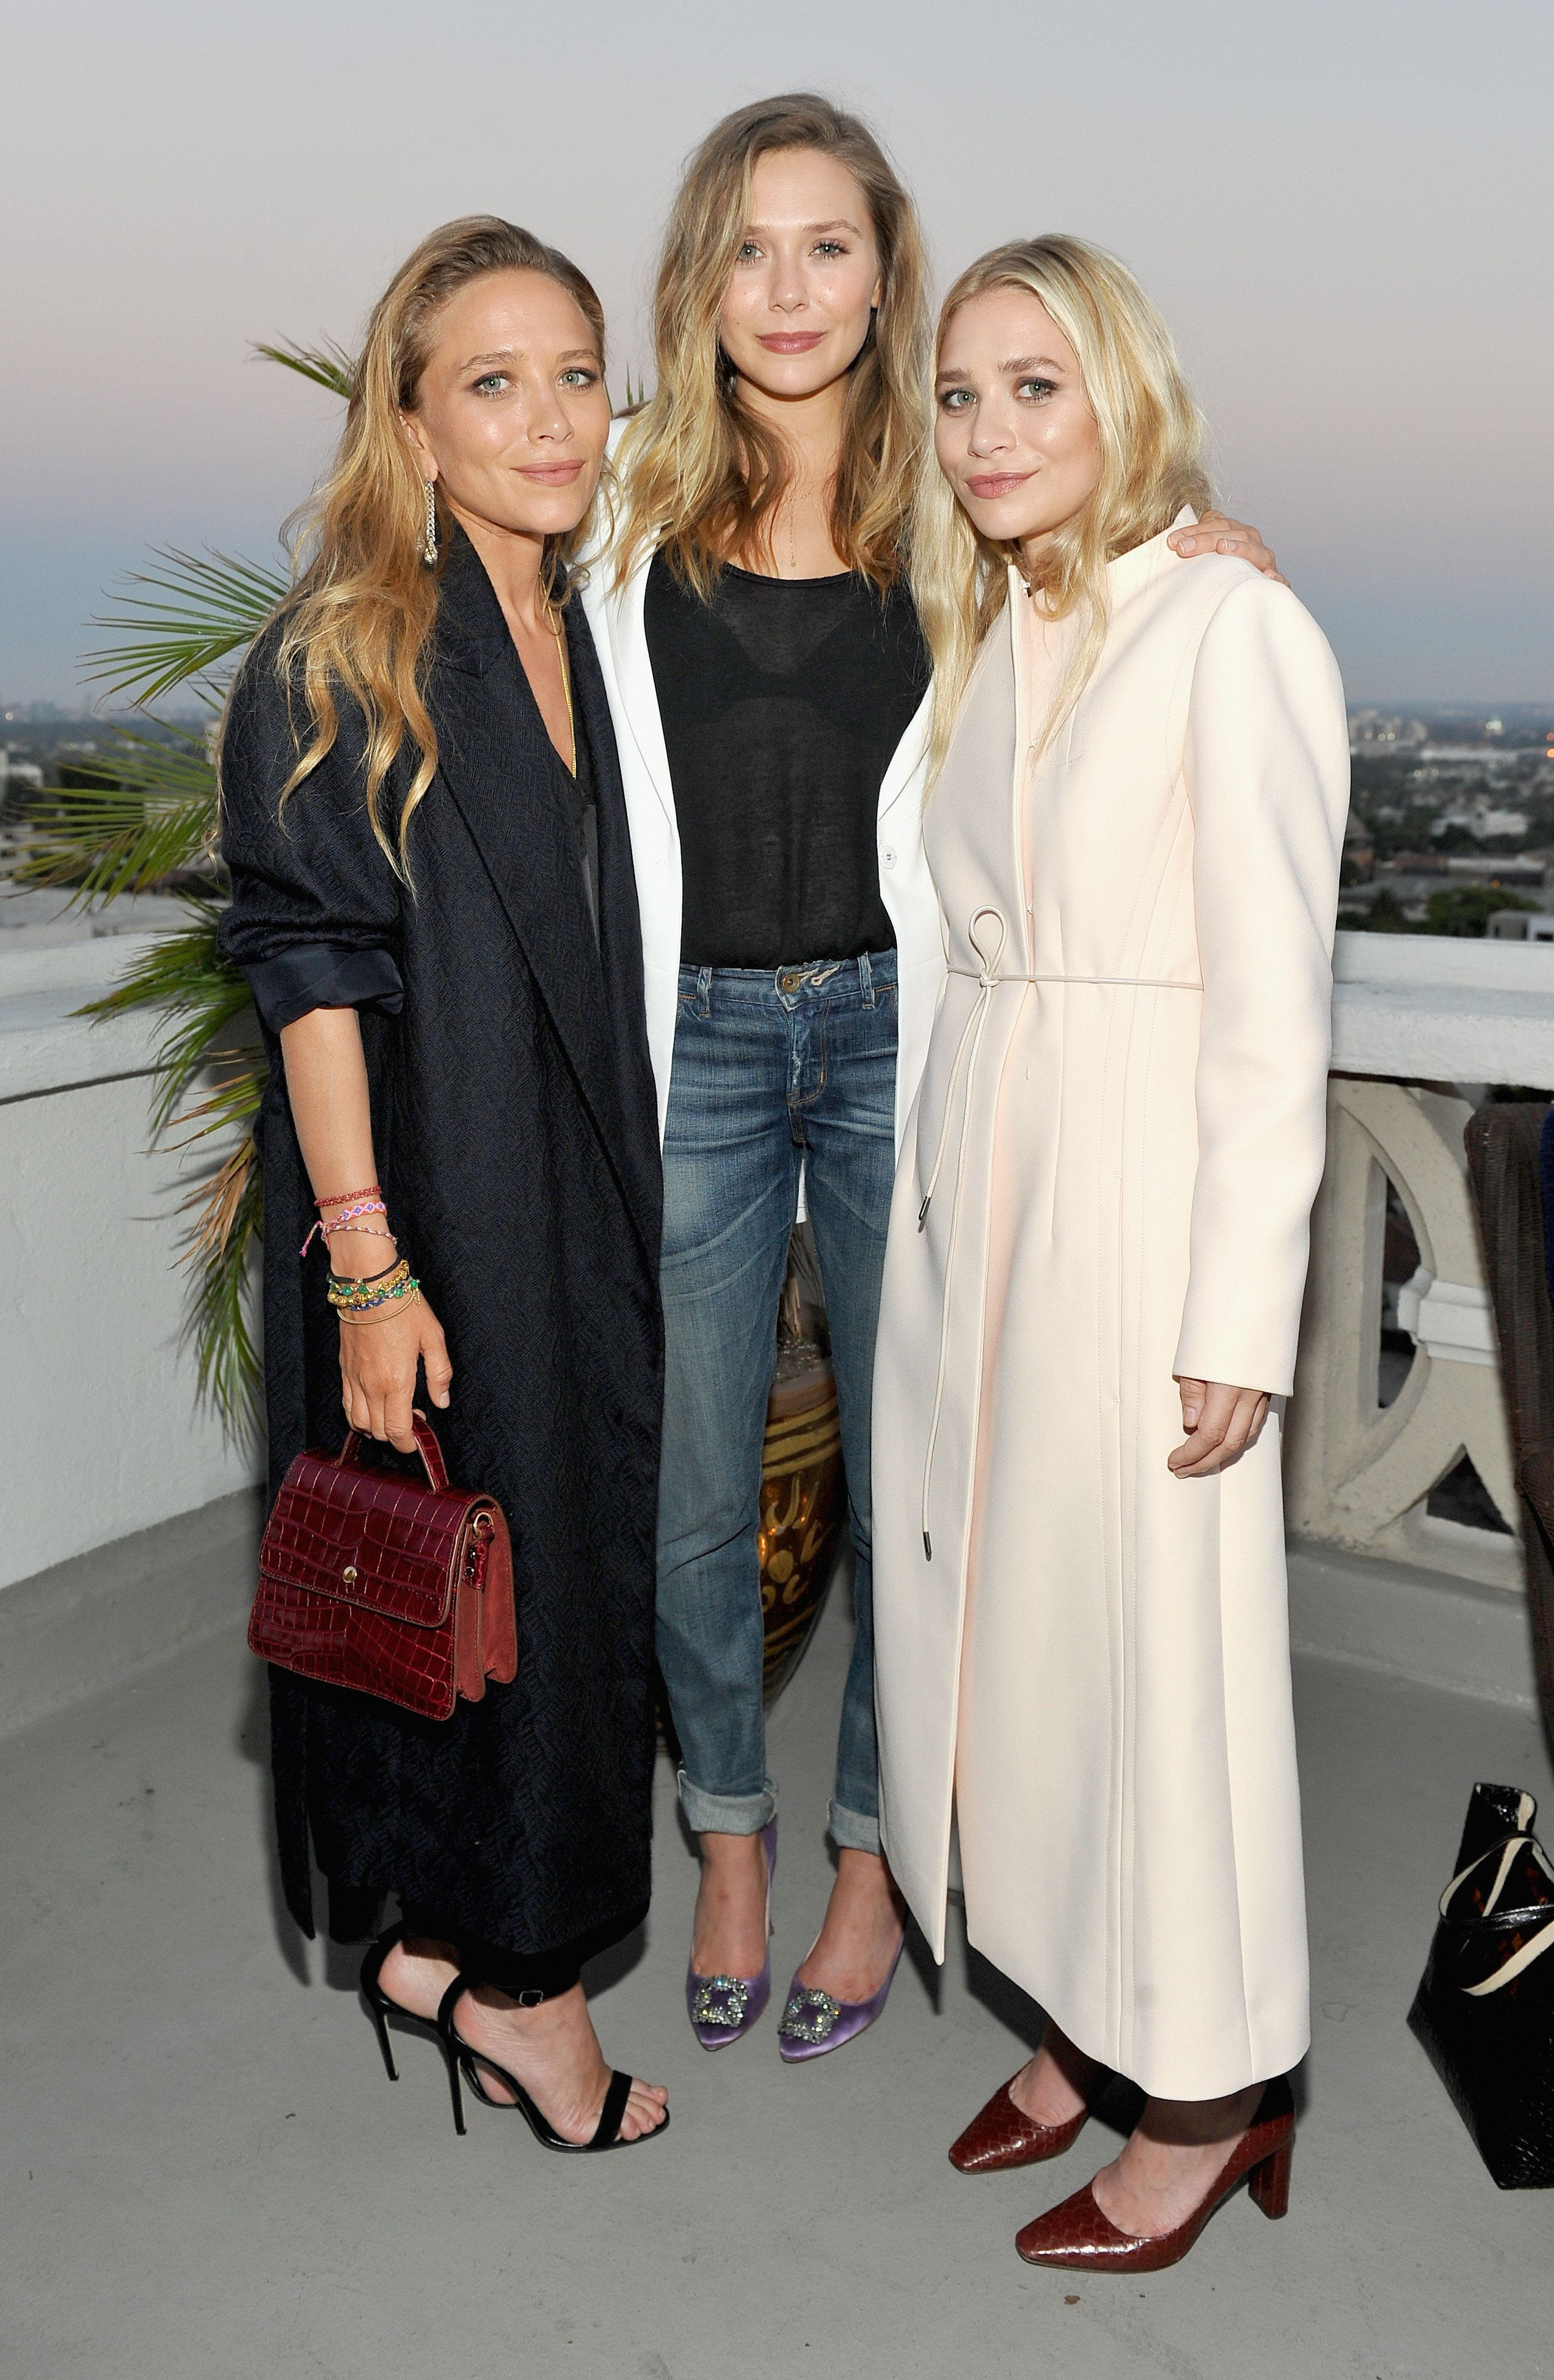 Mary-Kate, Elizabeth, and Ashley Olsen, dressed for a mix of seasons.